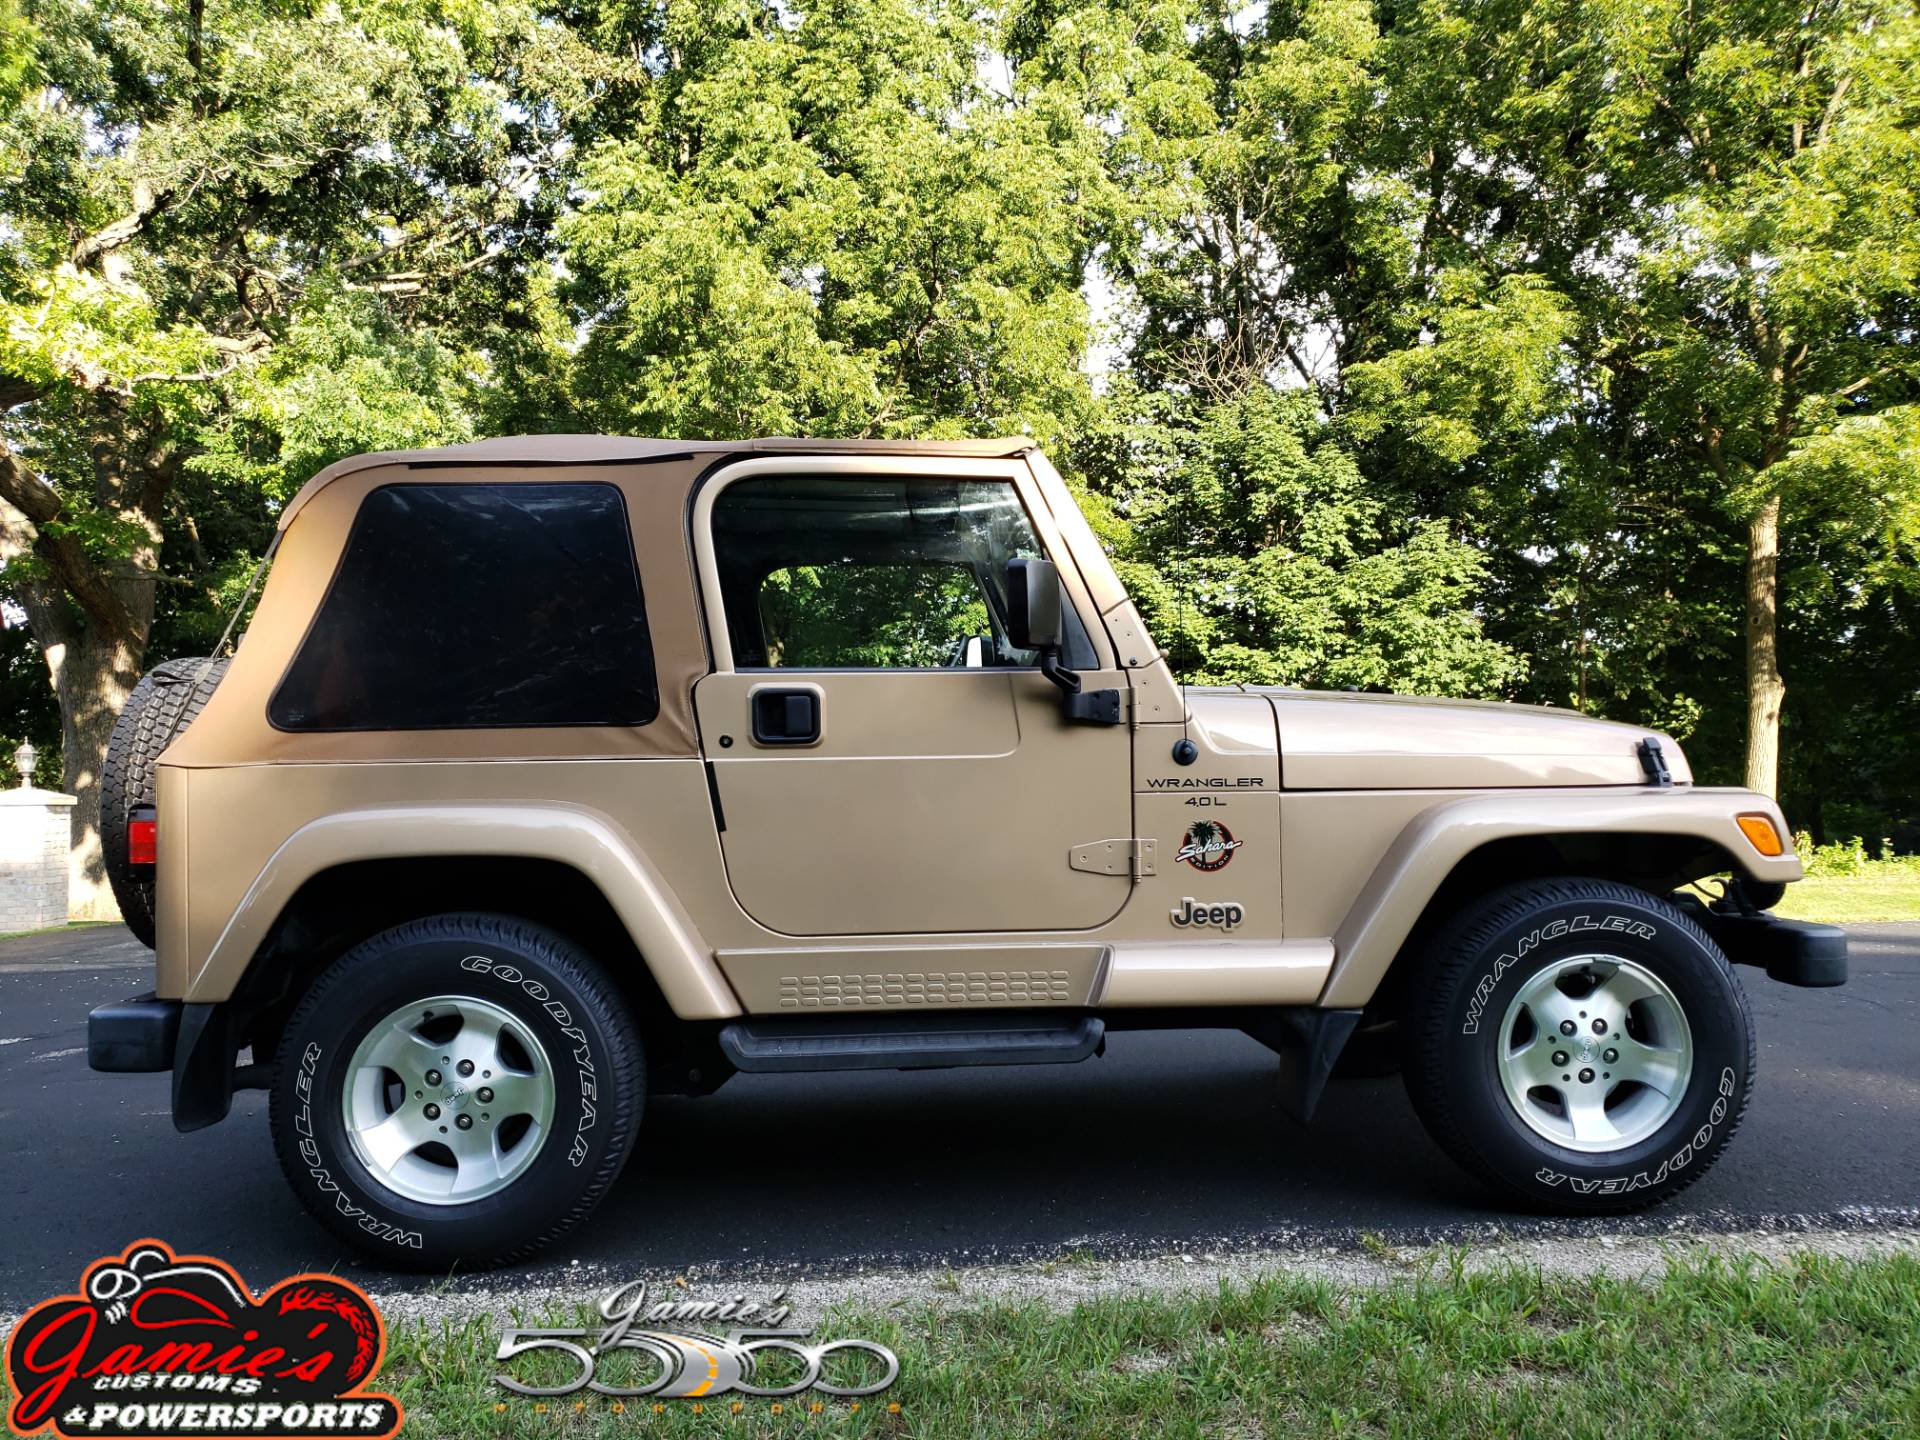 1999 Jeep Wrangler Sahara 2dr 4WD SUV in Big Bend, Wisconsin - Photo 1